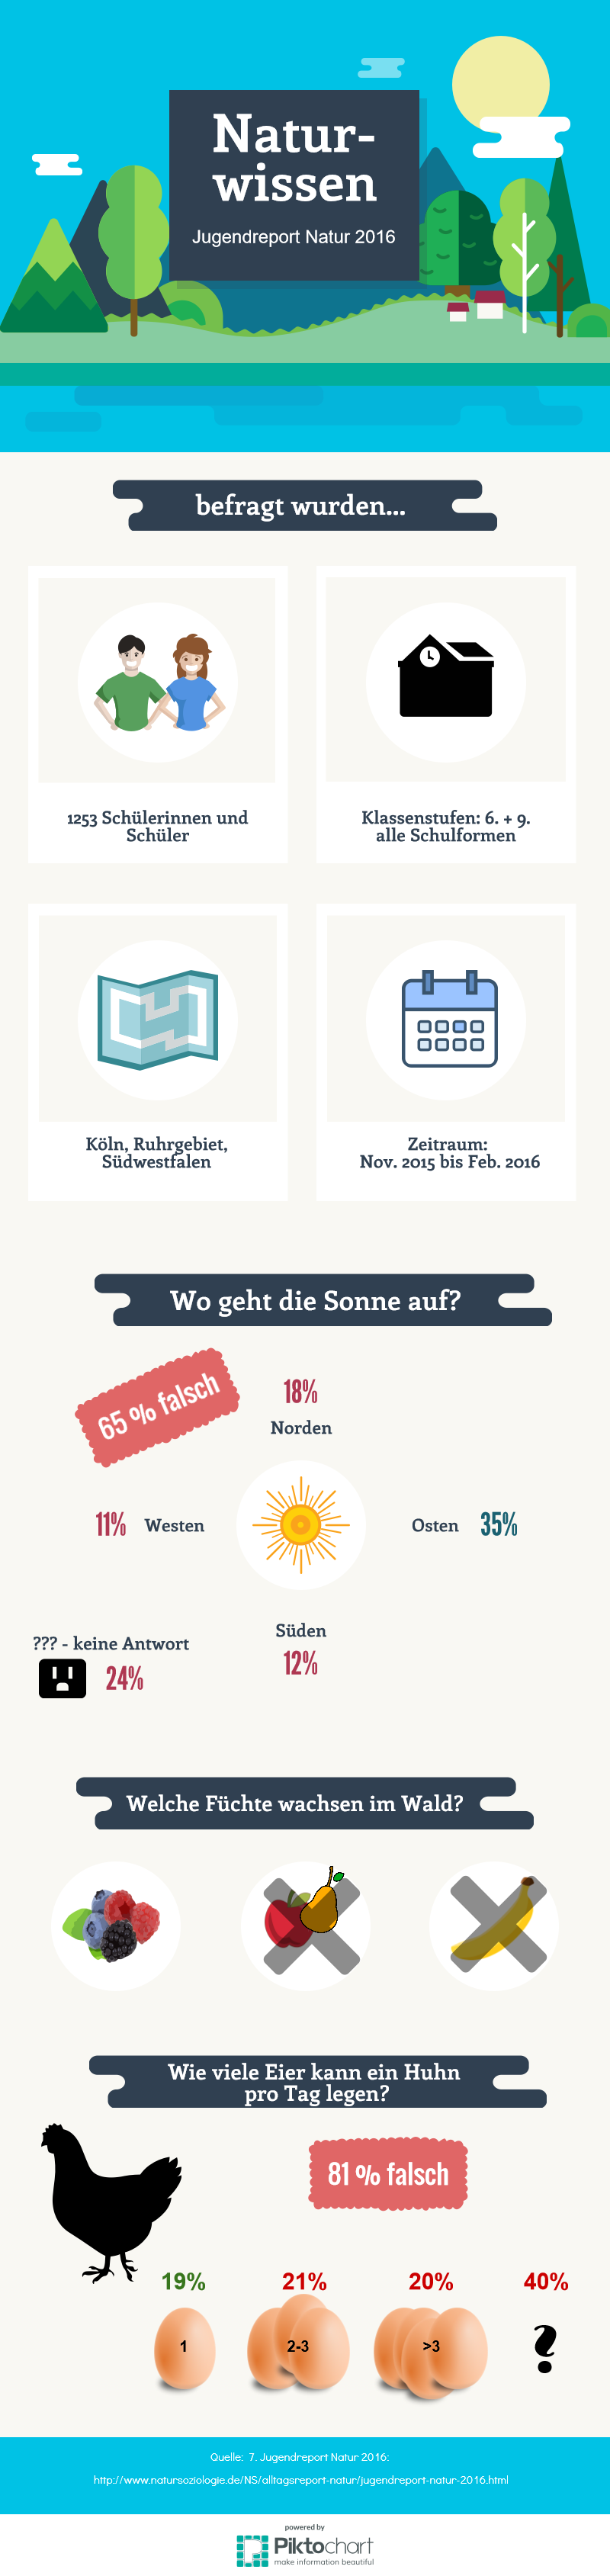 jugendreport-natur2016